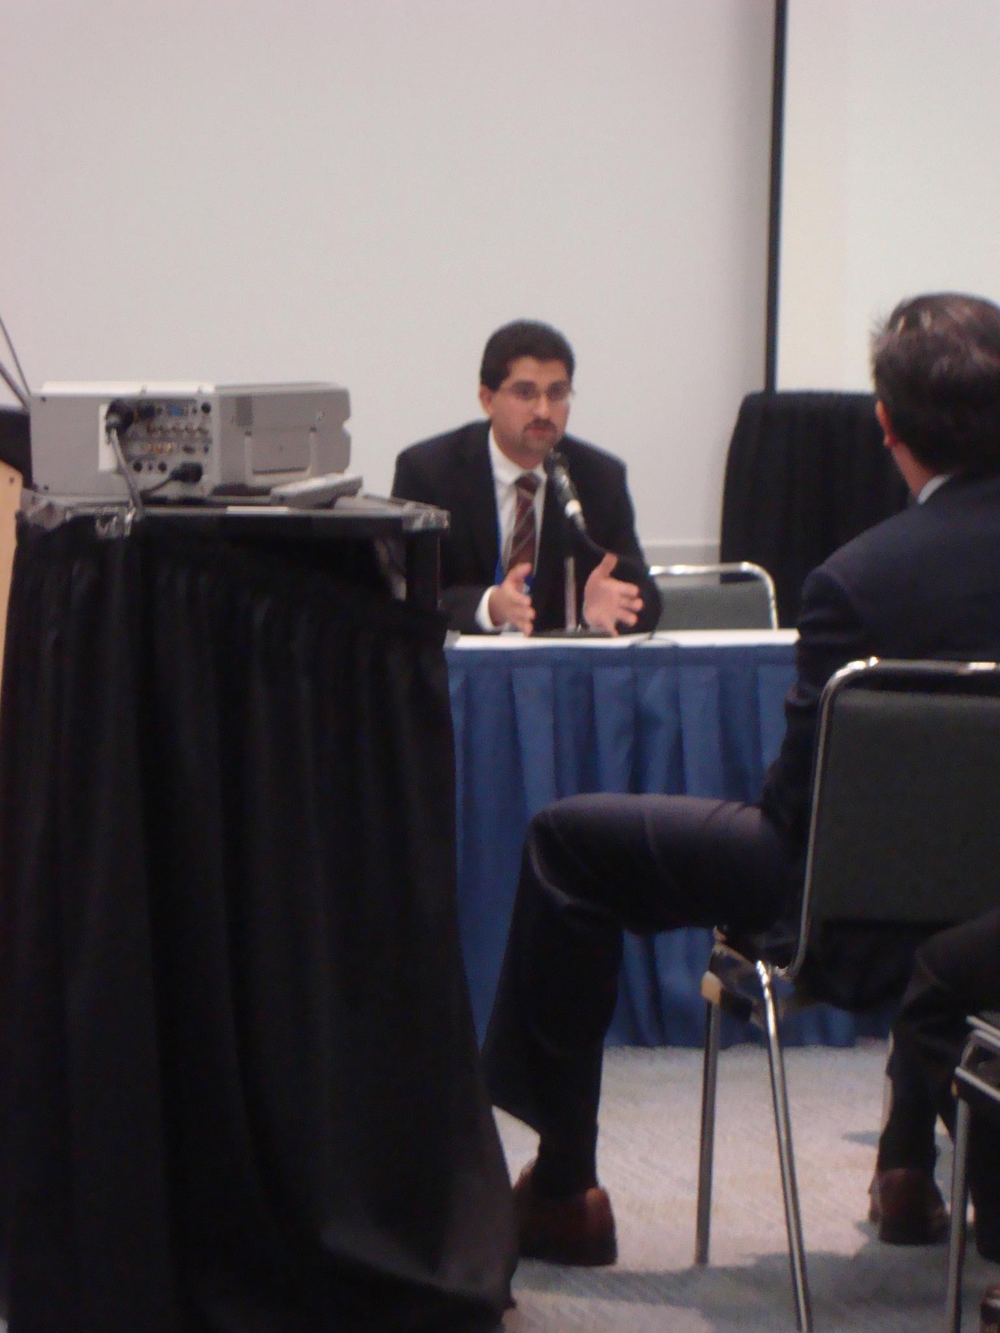 Juan Zepeda at the Entrepreneurial Panel at a SHPE National Conference in Anaheim